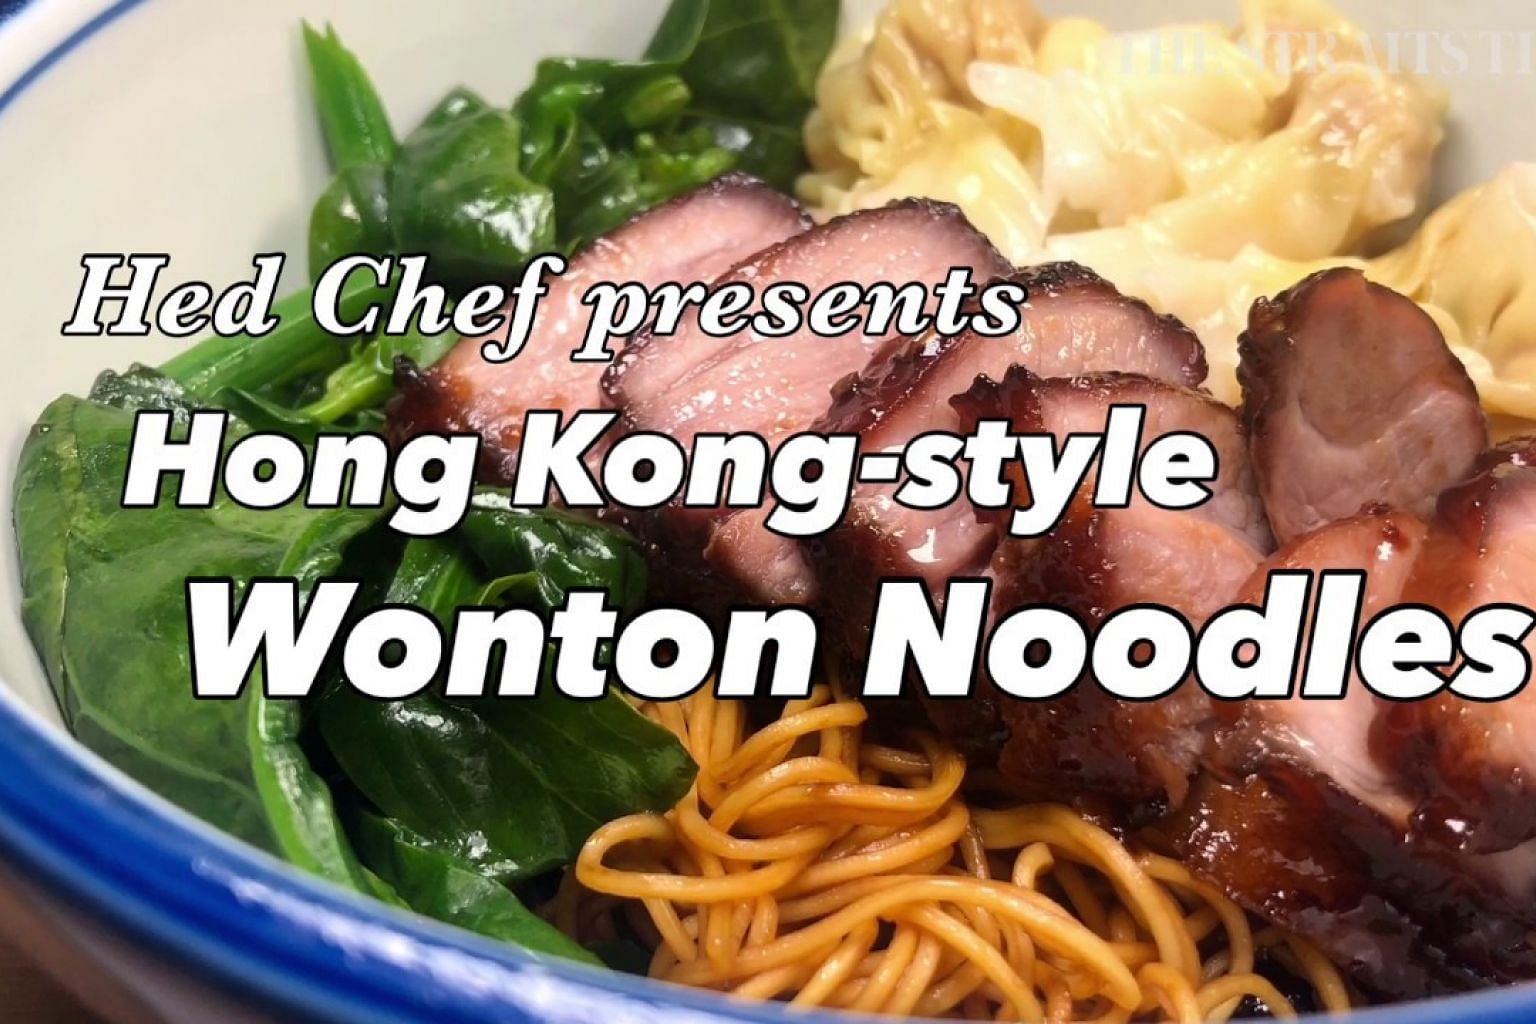 Recipe for Hong Kong-style Wonton Noodles | Straits Times Food